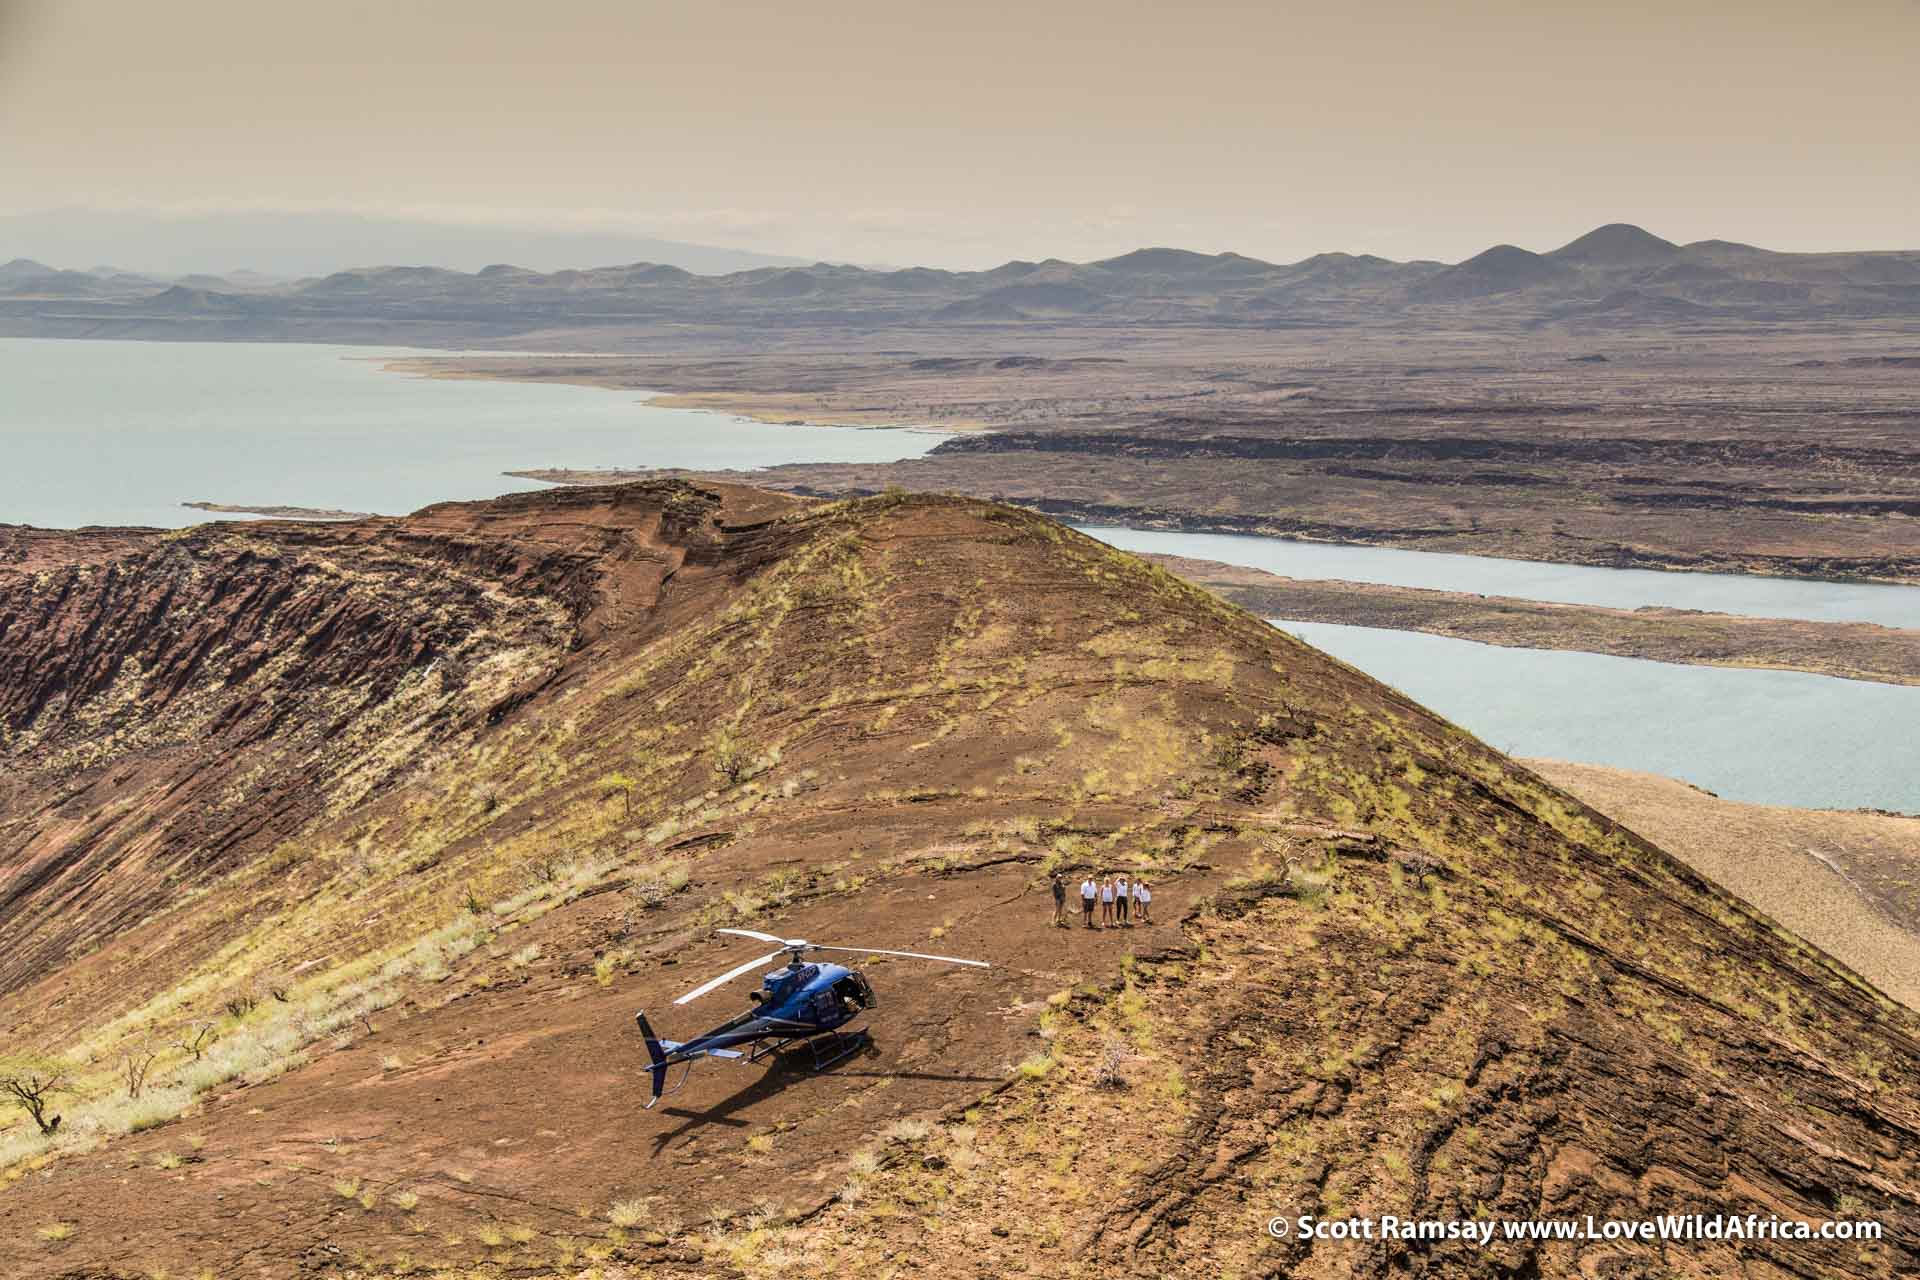 Looking north towards Lake Turkana, with chopper on top of Nabiyotum Crater in the foreground.